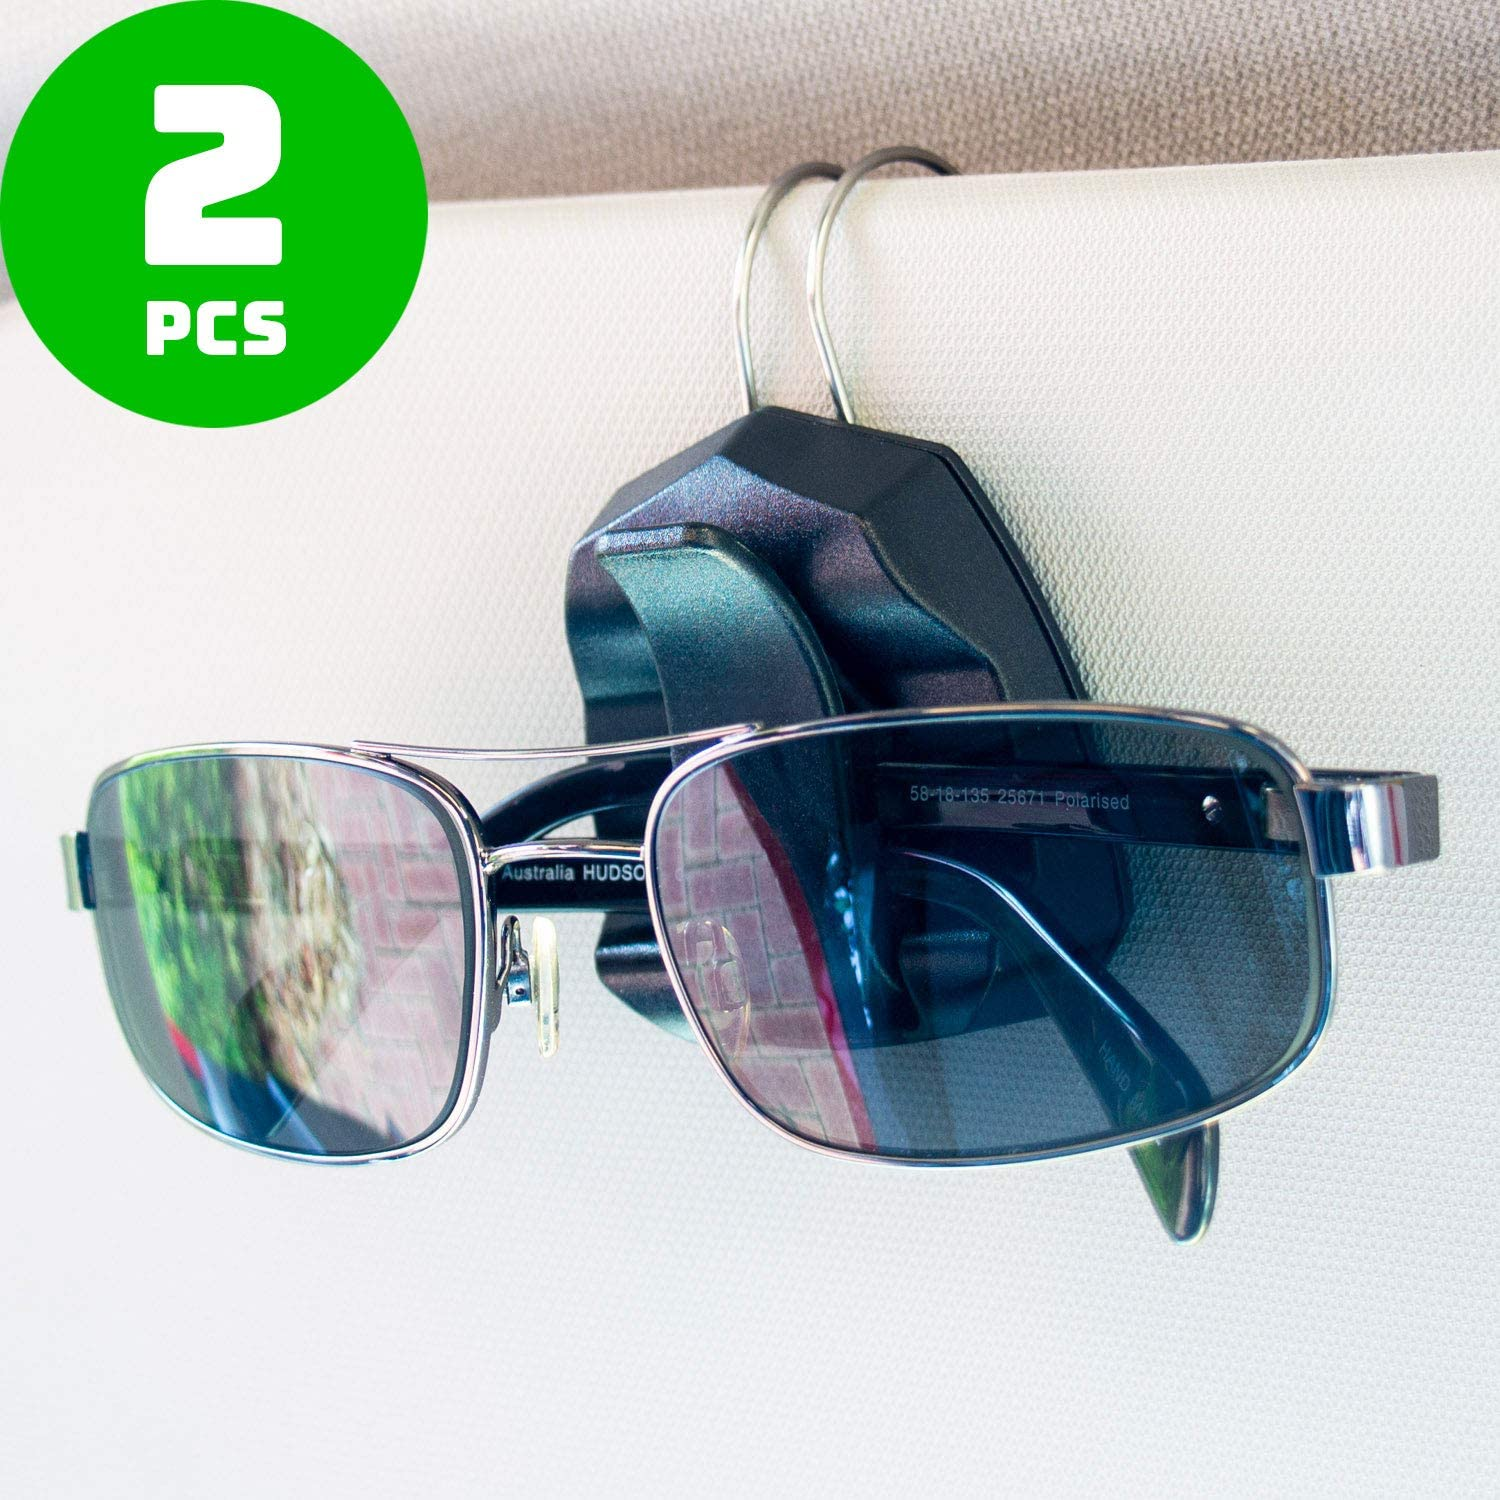 Sunglass Clip for Car Visor - Premium Eyeglass Holder - Set of 2